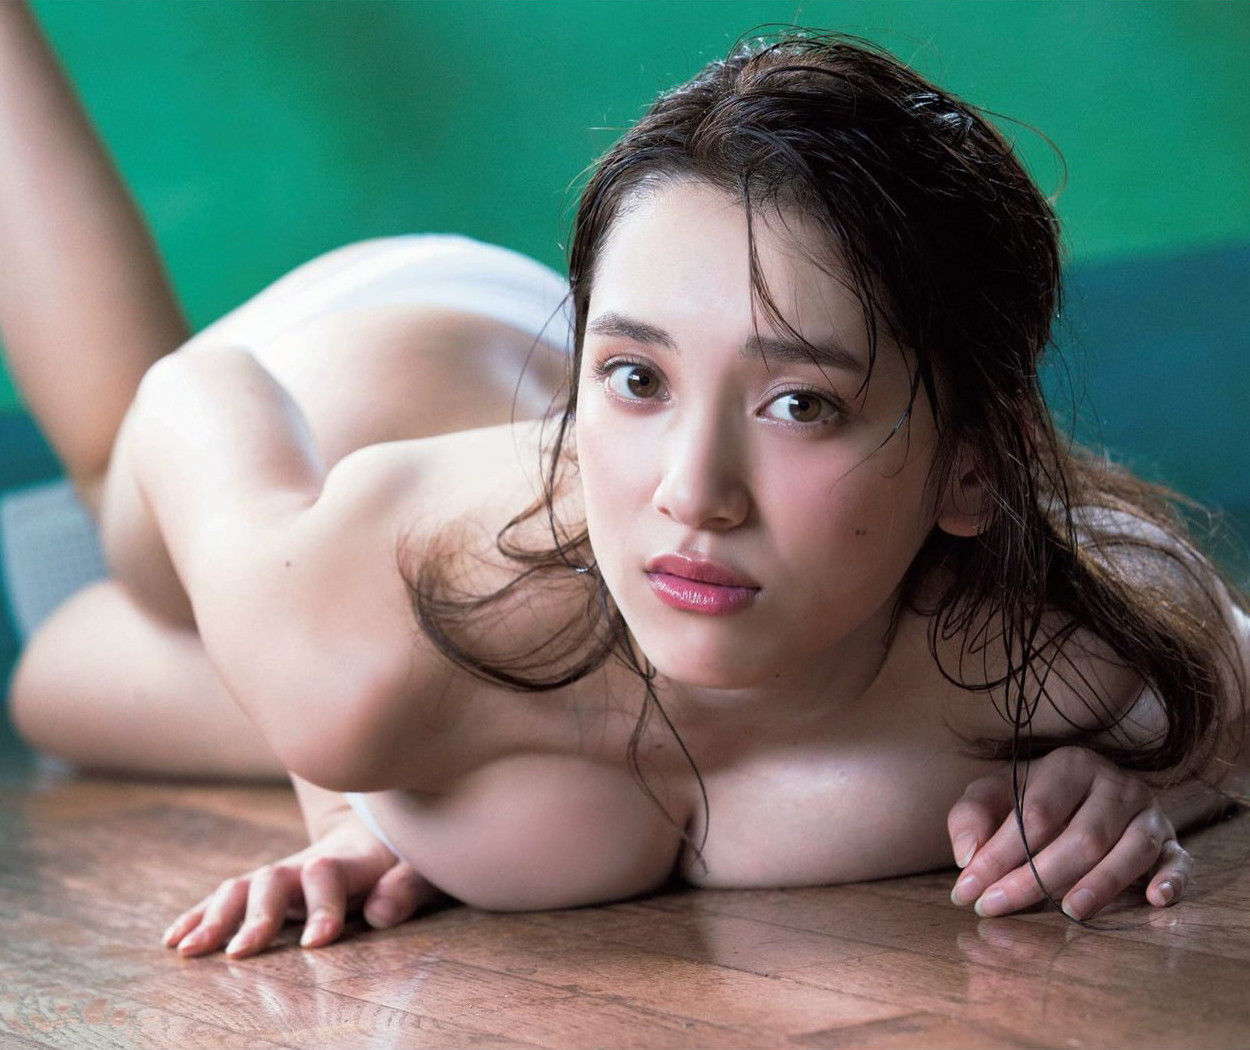 Gravure Idol, Japanese Beauties Model, 都丸紗也華  Sayaka Tomaru